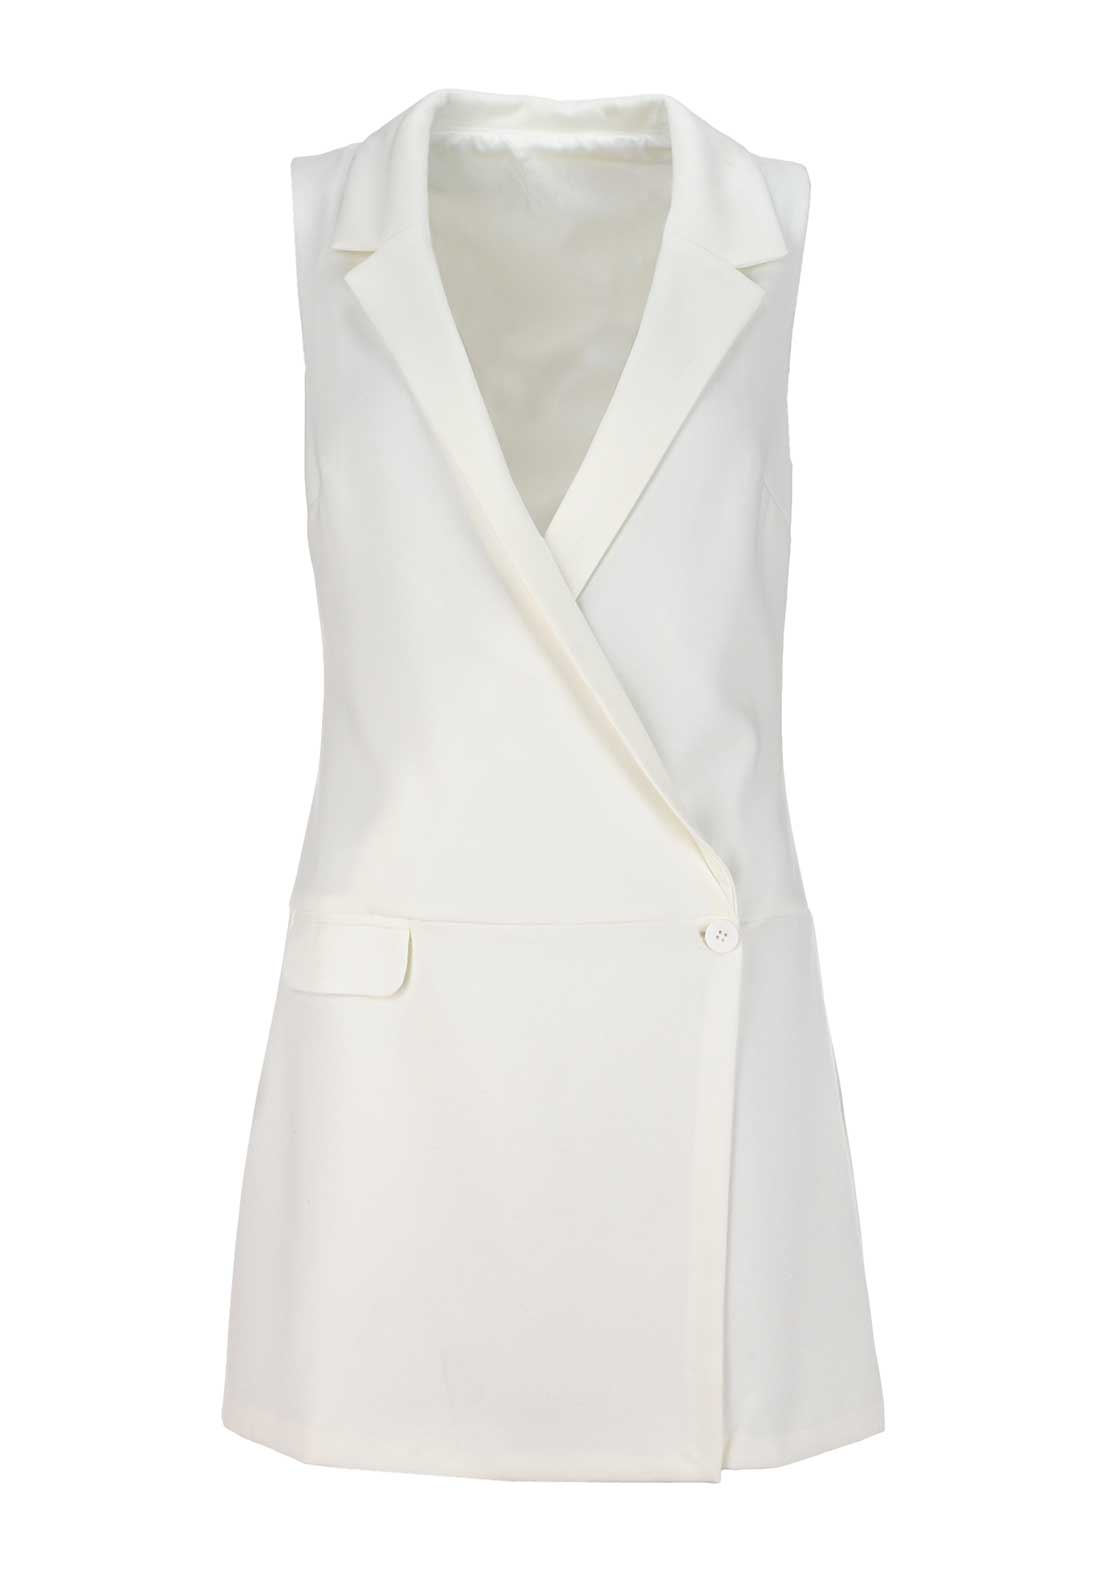 Boutique Sleeveless Blazer Jacket, Cream